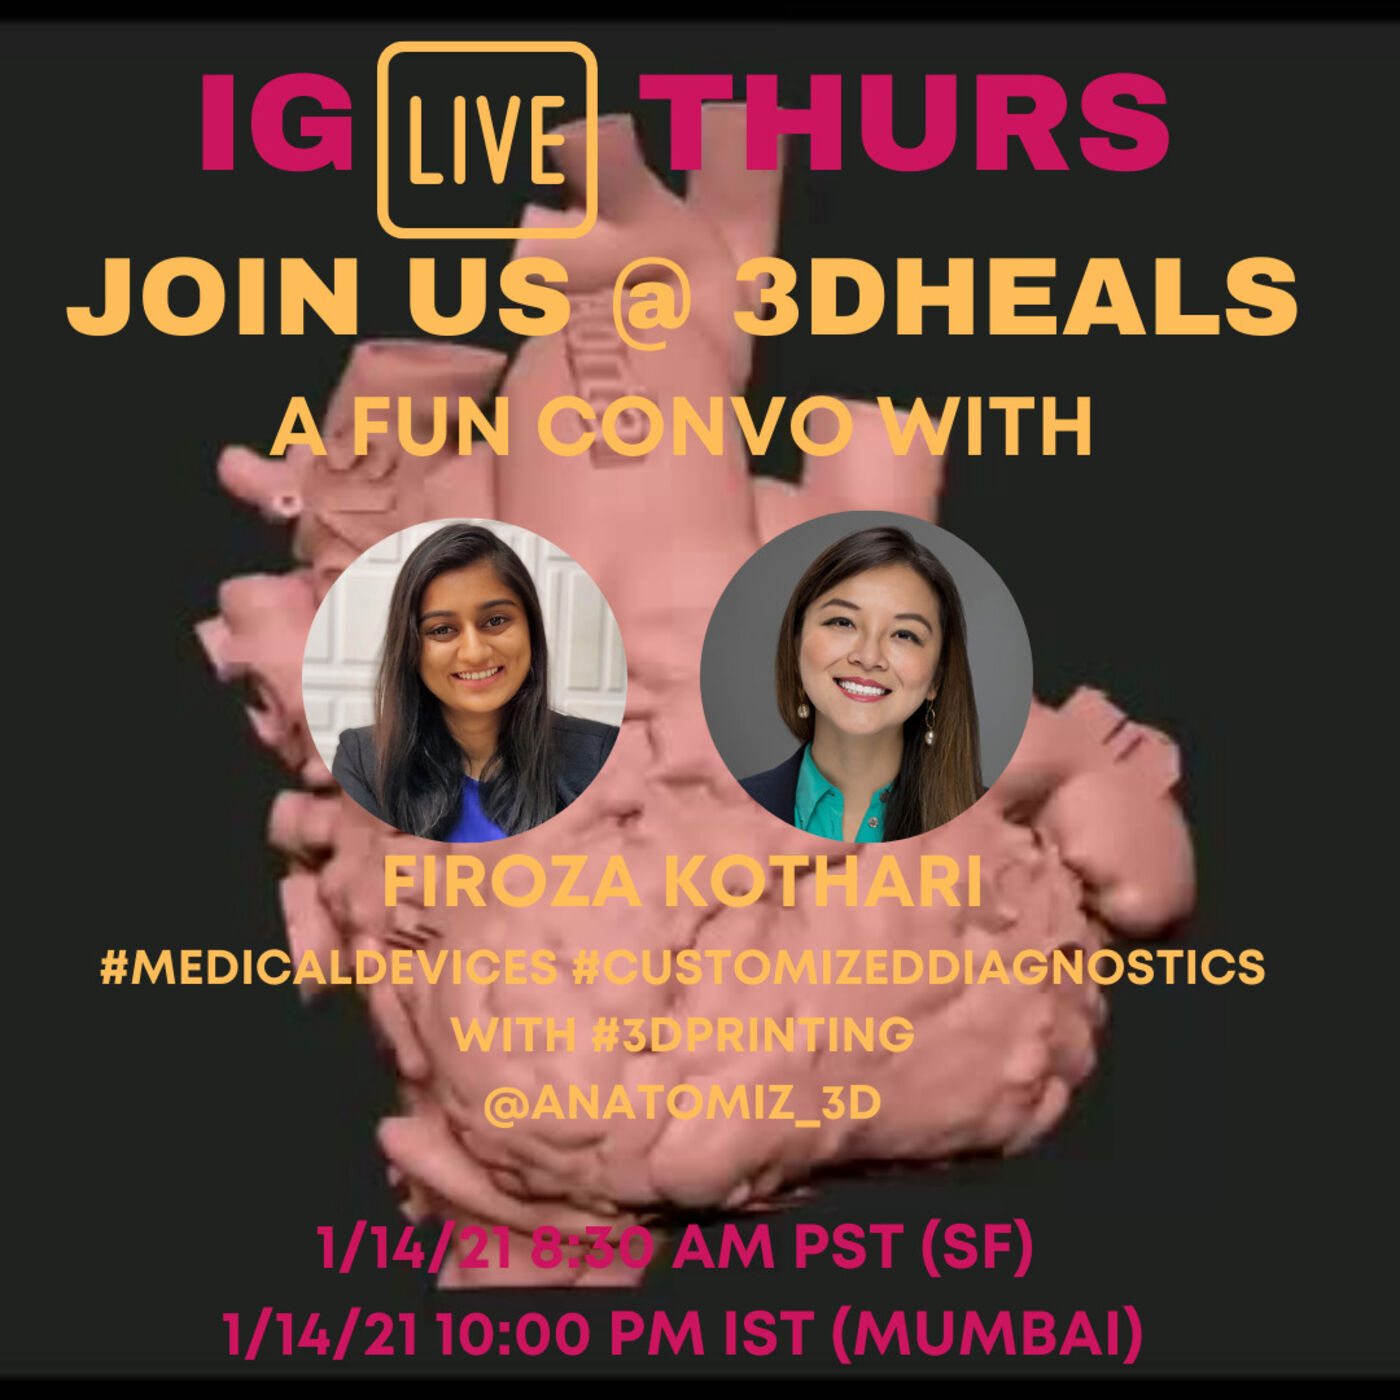 3DHEALS Instagram Live: Medical 3D Printing with Co-Founder of Anatomiz3D Firoza Kothari